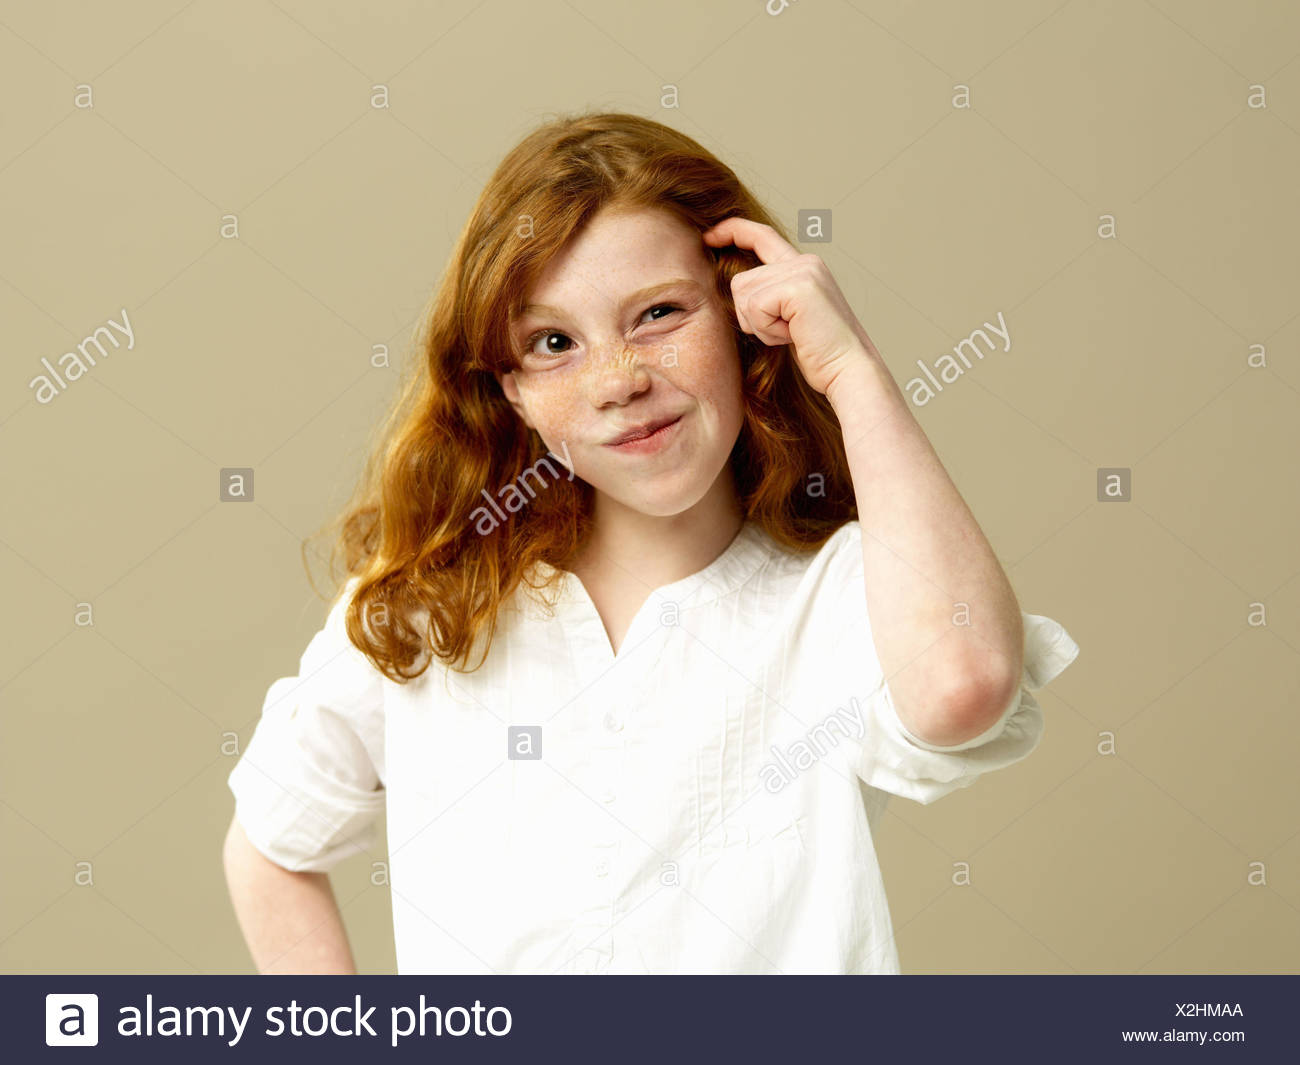 Girls, red-haired, gesture, thoughtfully, portrait, child, long-haired, blouse, shirt, freckles, brood, doubt undecided, think, consider, point tricky, Vogel, indicate, facial play, grimace, young persons, duth, childhood, side glance, studio, - Stock Image